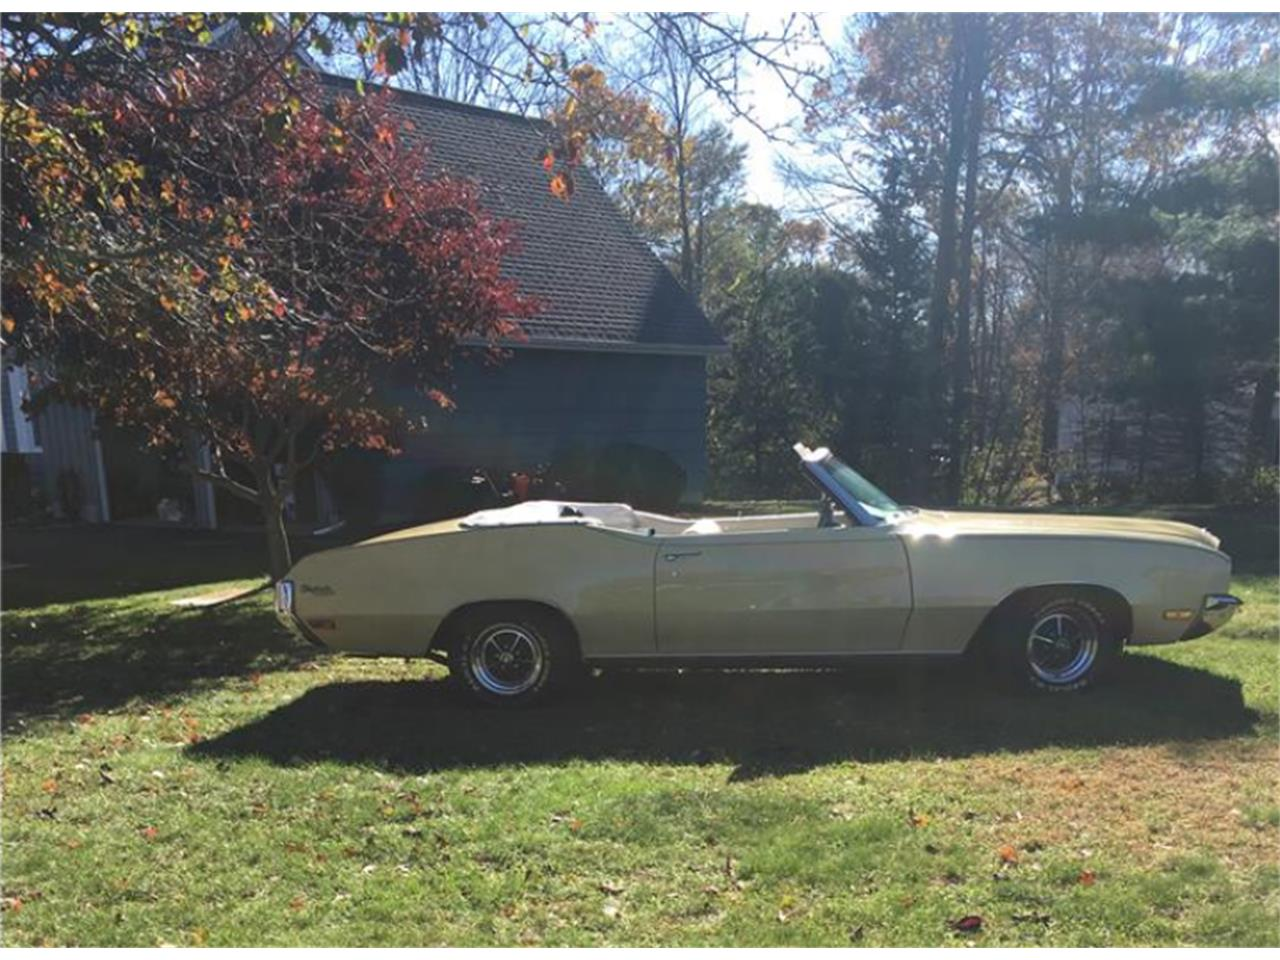 Large Picture of '72 Buick Skylark located in Trumbull Connecticut - $19,000.00 - N1WN